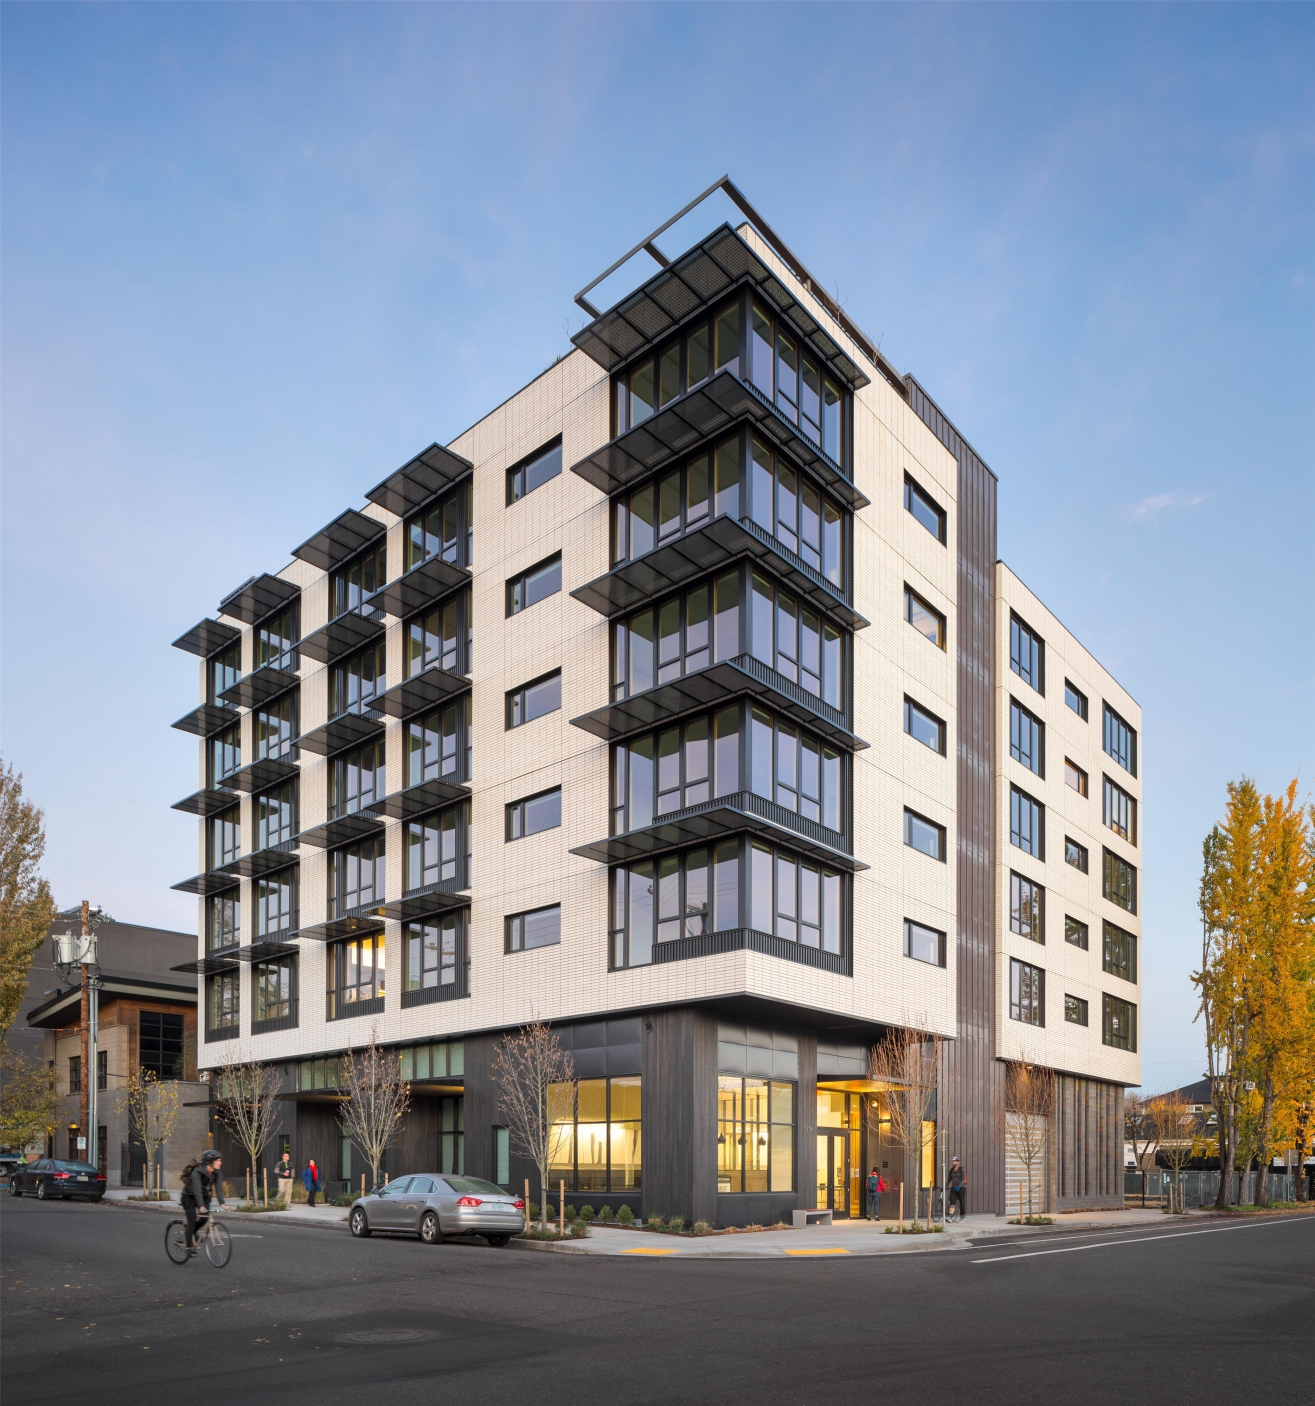 Muse apartments gbd architects portland oregon for Building a house in portland oregon